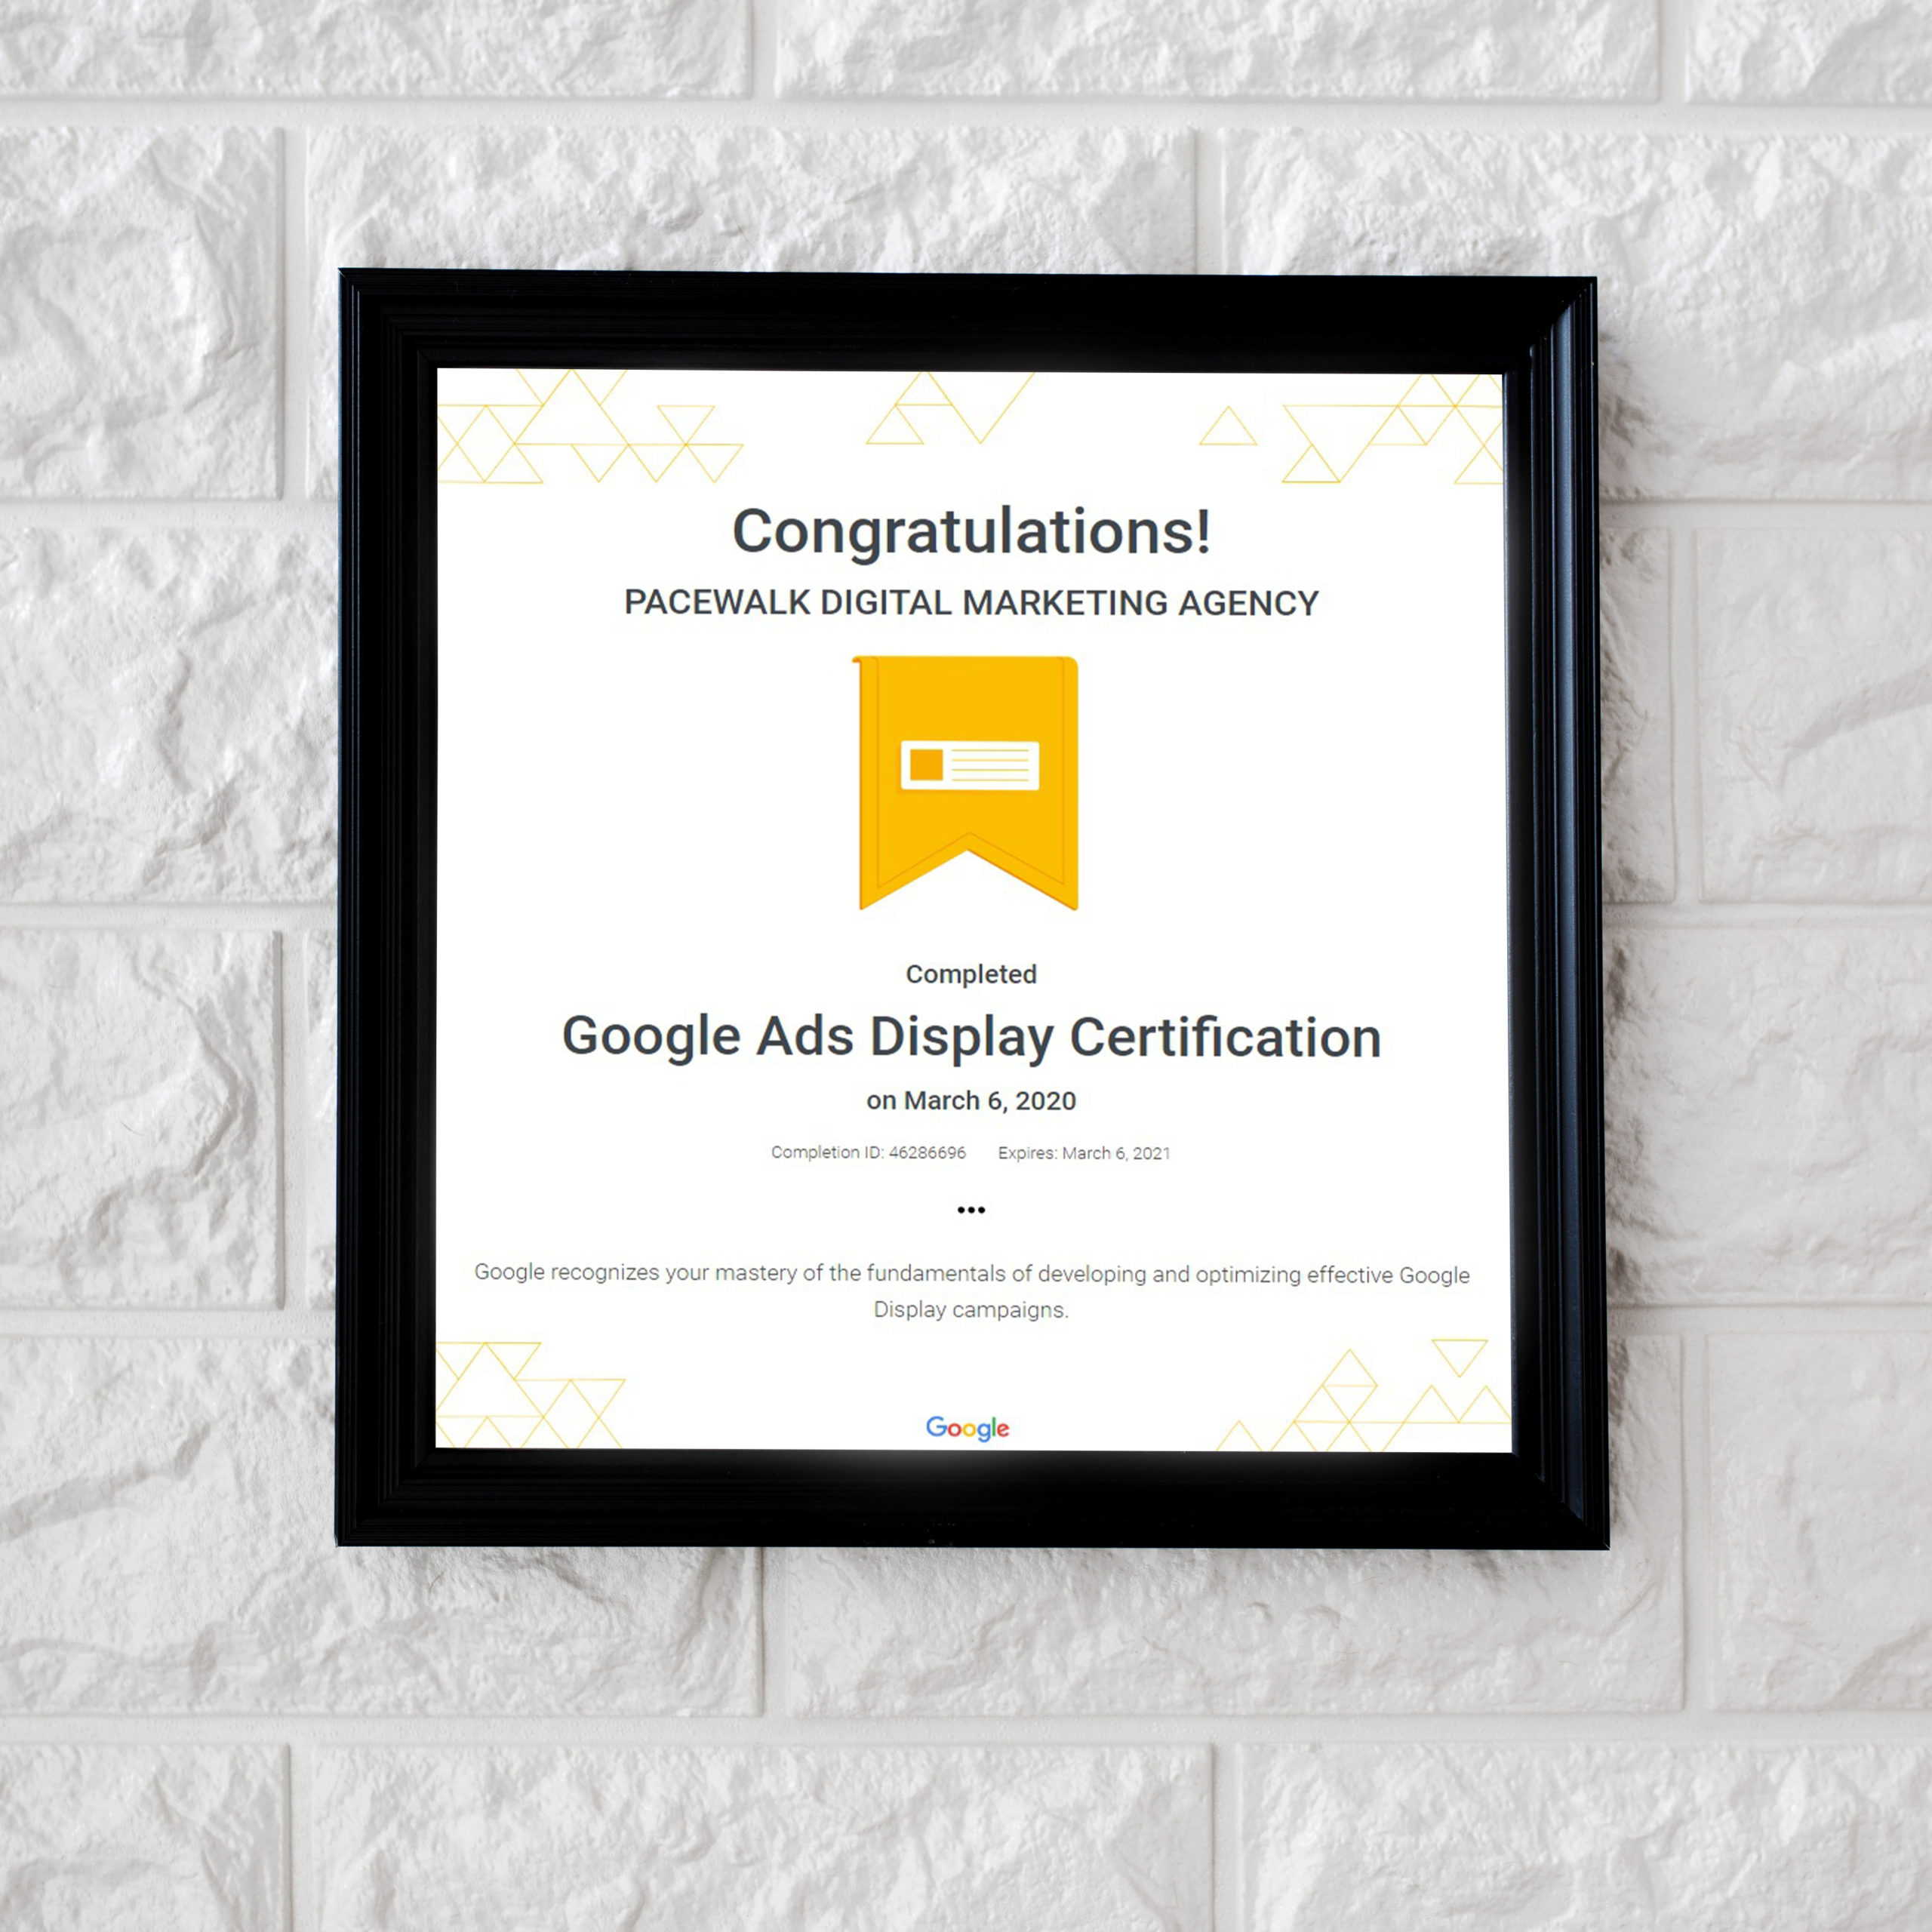 Google Certified Company Pacewalk